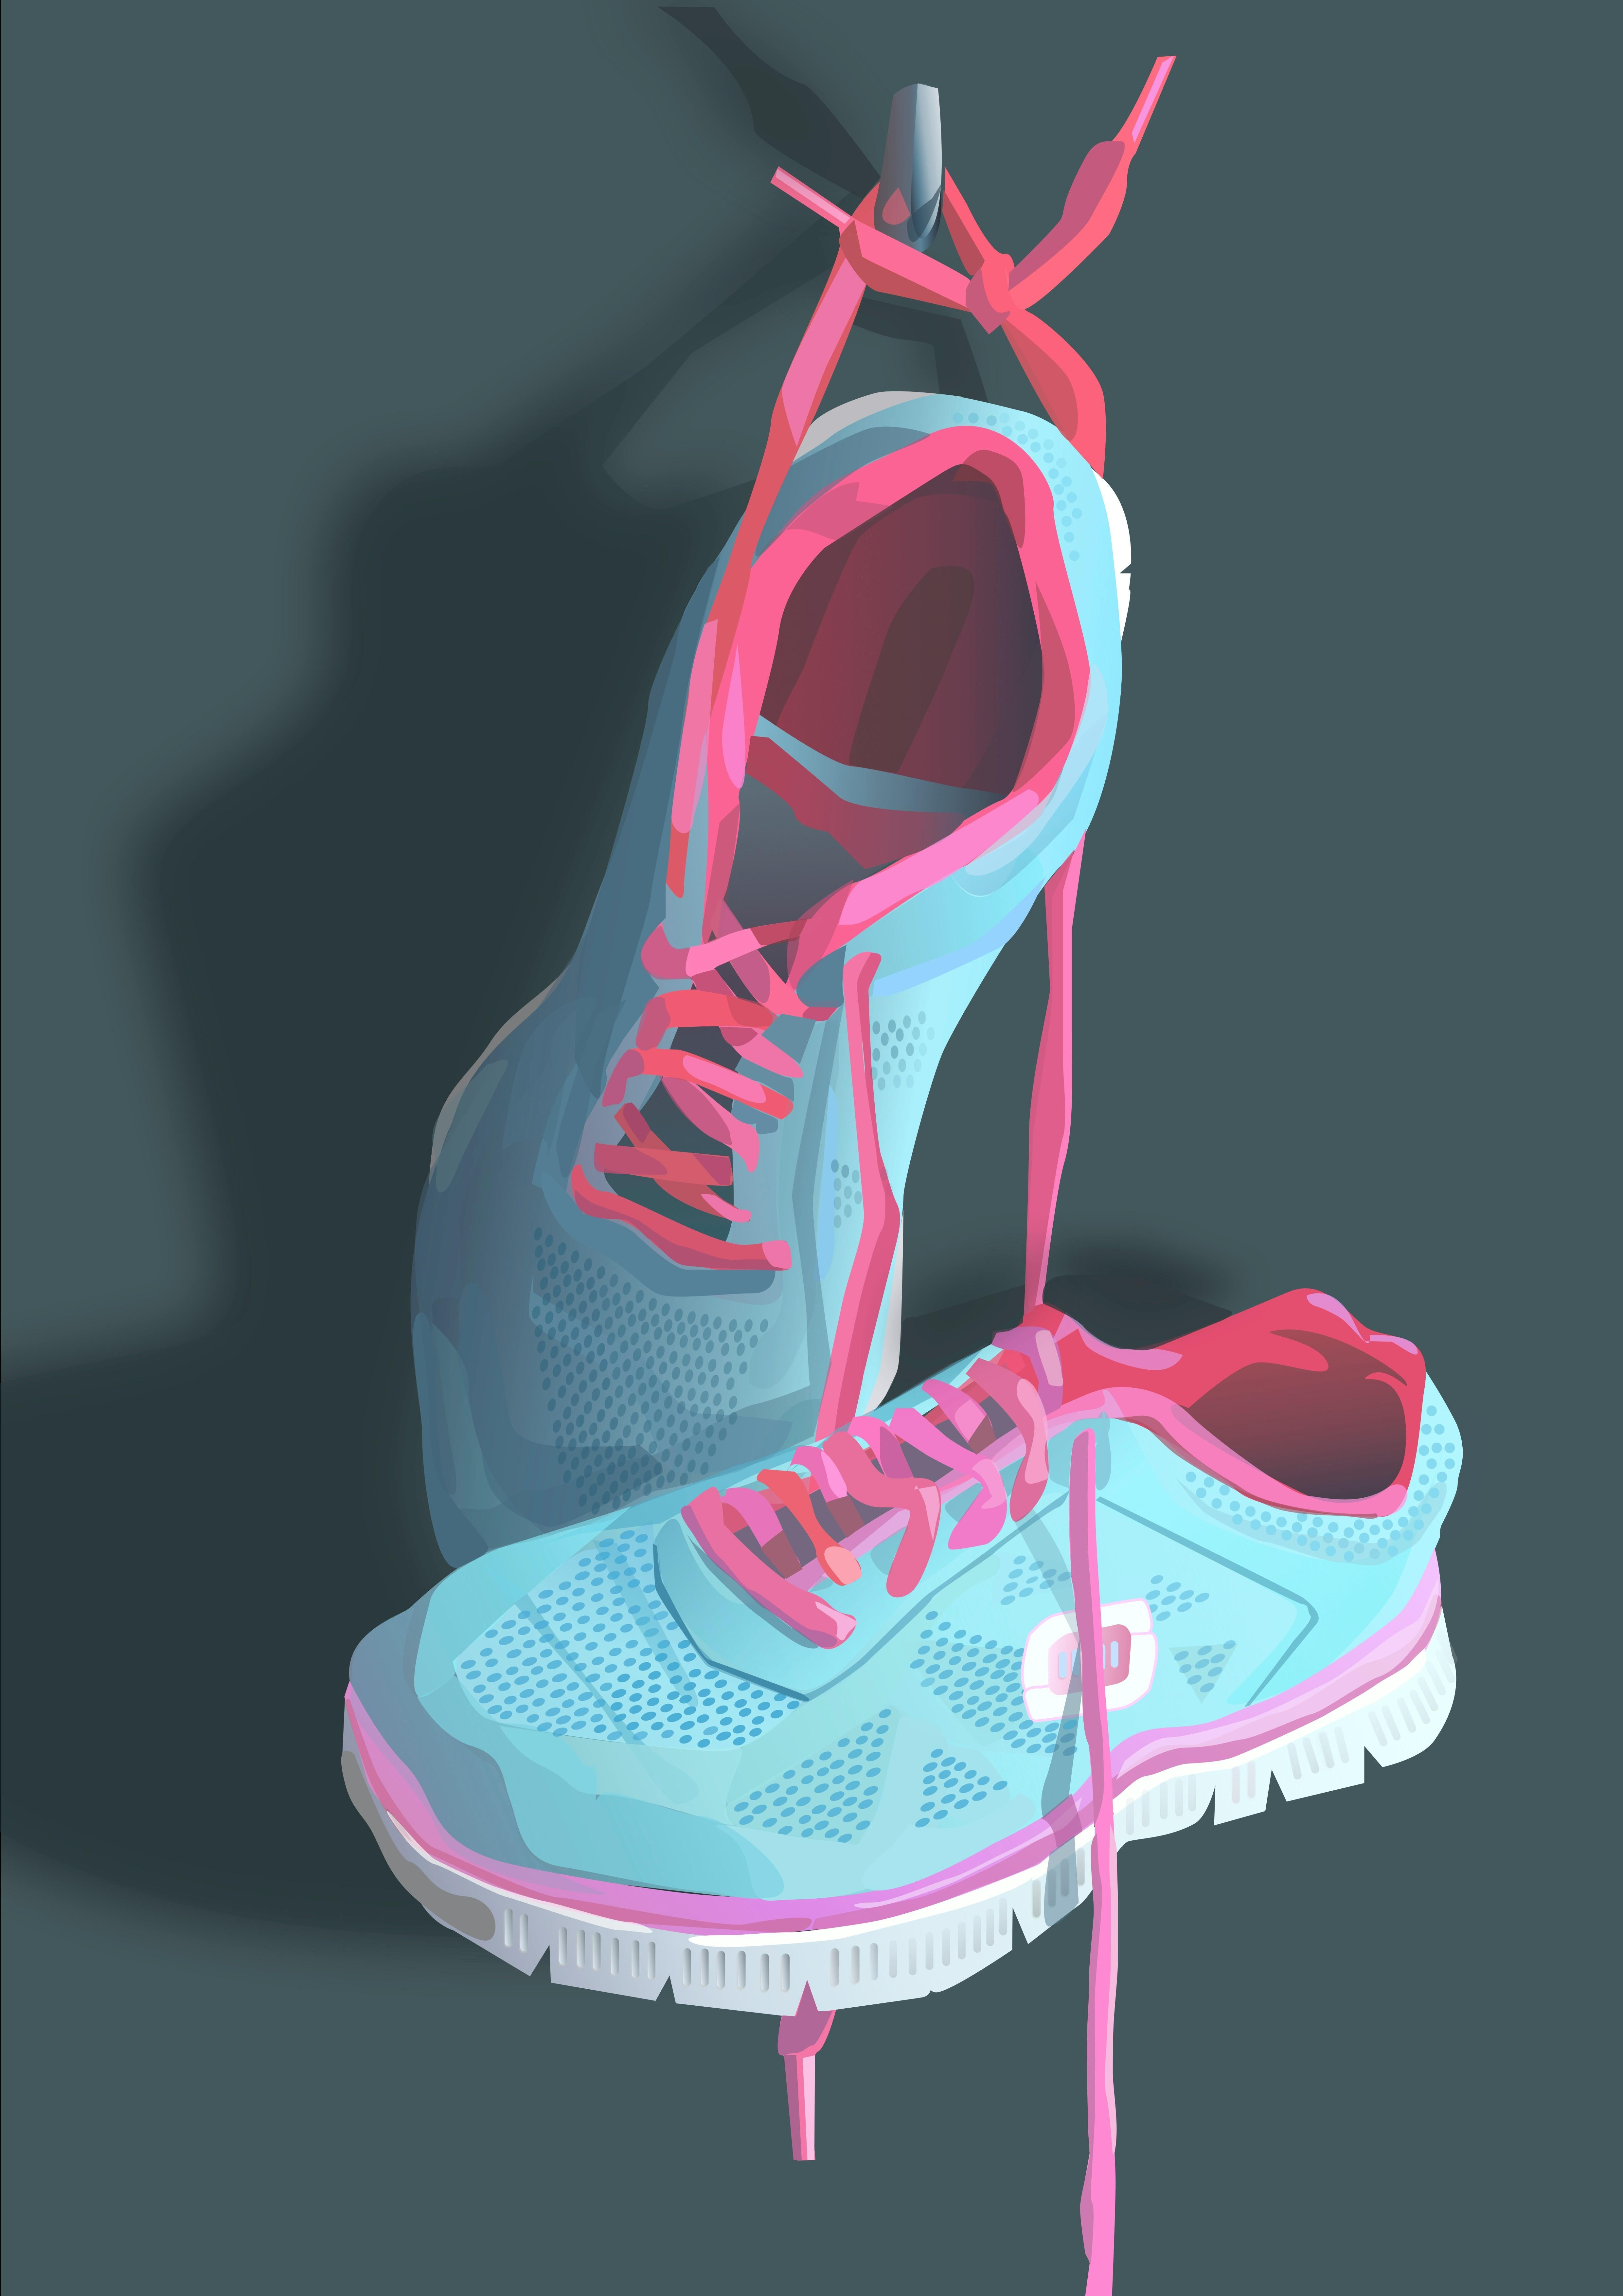 Exercise- Contemporary Eco Pop art, digital print on paper